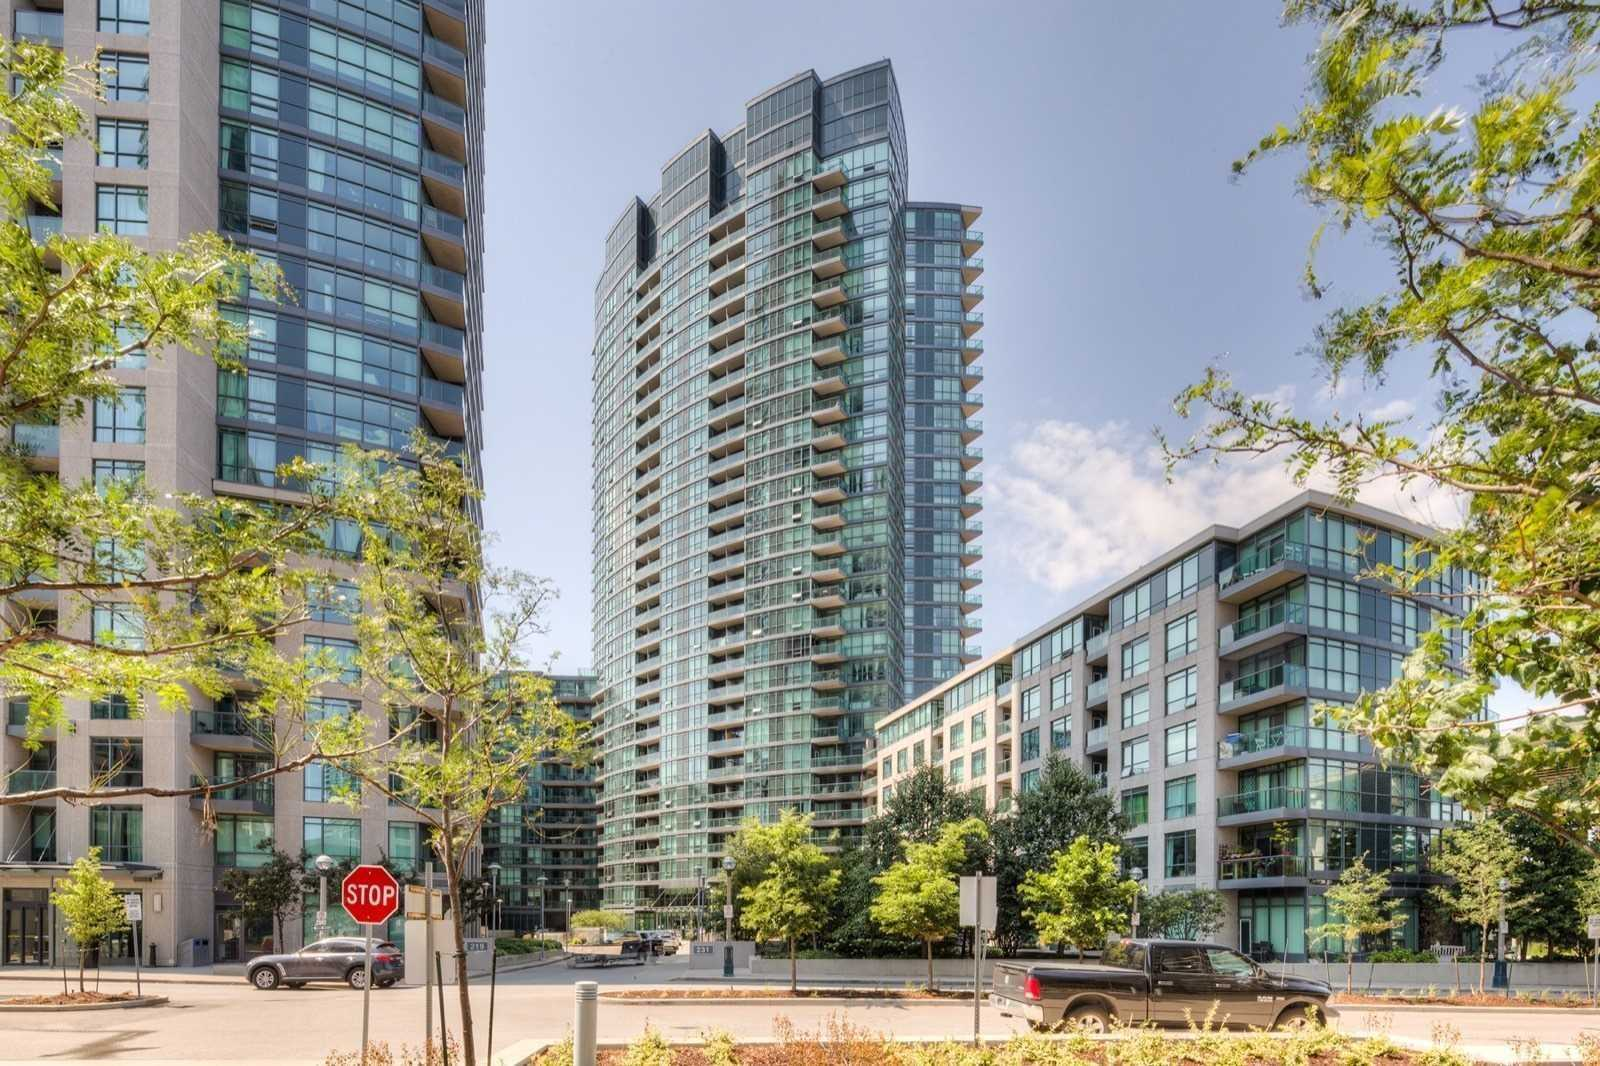 231 Fort York Blvd, Toronto, Ontario M5V1B2, 1 Room Rooms,1 BathroomBathrooms,Condo Apt,For Sale,Fort York,C4959158